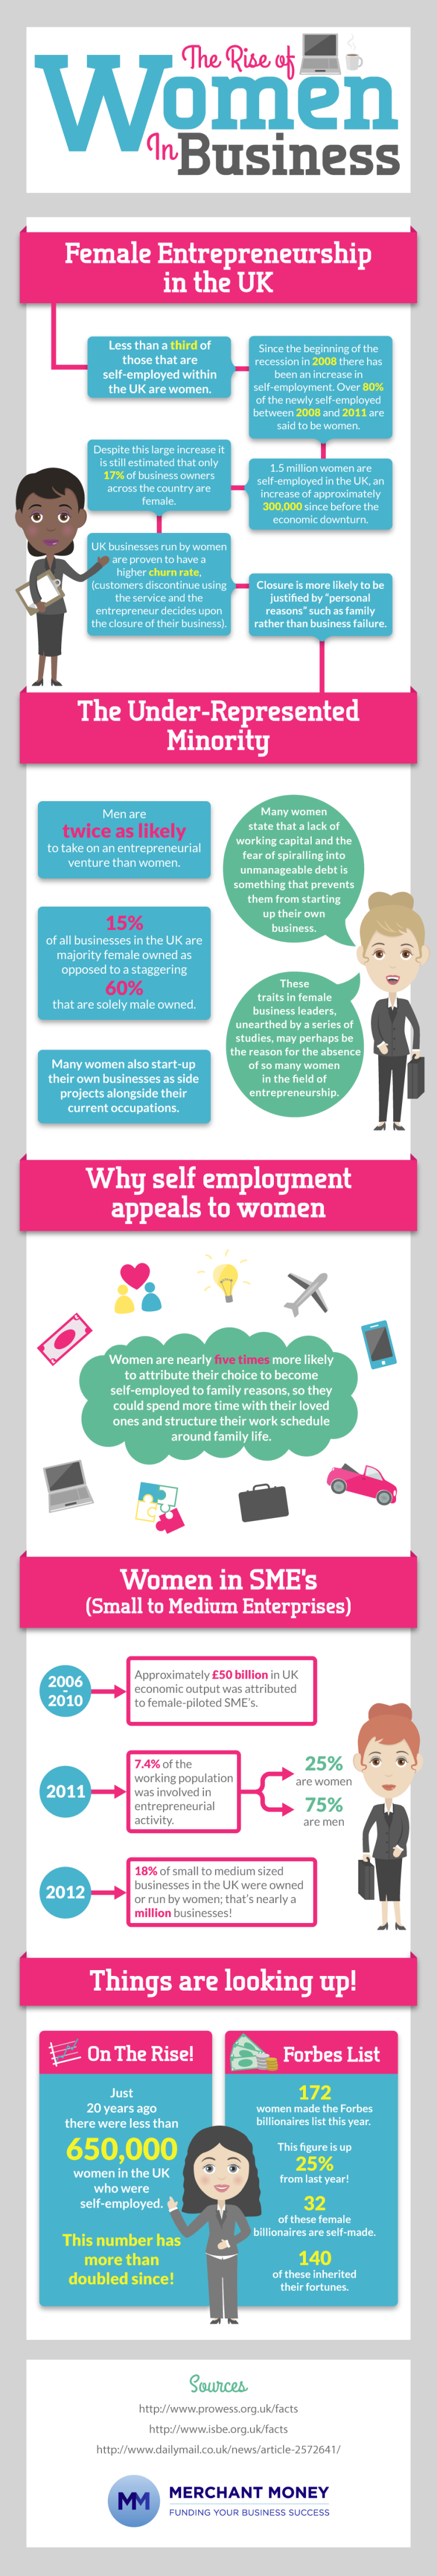 women entrepreneurs in the uk